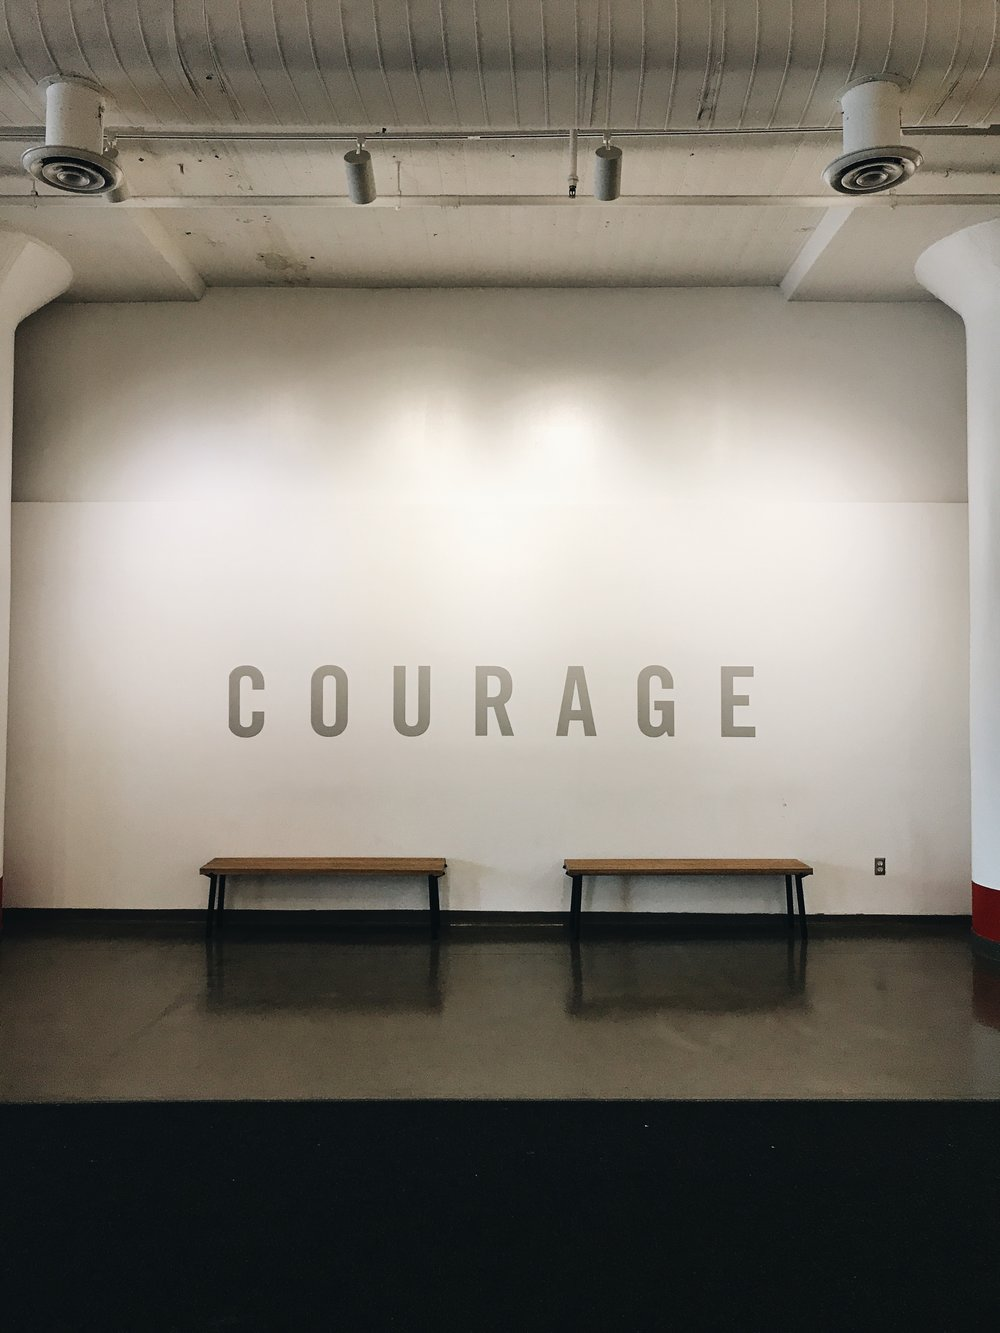 MY TRAVELS BROUGHT ME TO THE FACTORY LOCATED IN LONG ISLAND CITY, ABOUT A 10 MINUTE WALK FROM THE COURT SQUARE DINER. THE INTERIOR DESIGN OF THE LOBBY APPEALED TO ME GREATLY, THIS WALL IN PARTICULAR. I COULDN'T HELP BUT SNAP A PIC AND THINK OF THE MANY QUOTES THAT EXIST ABOUT COURAGE, ONE OF MY FAVORITE WORDS. ONE STOOD OUT IN PARTICULAR, SAID BY A FAVORITE NOVEL CHARACTER, ATTICUS FINCH...